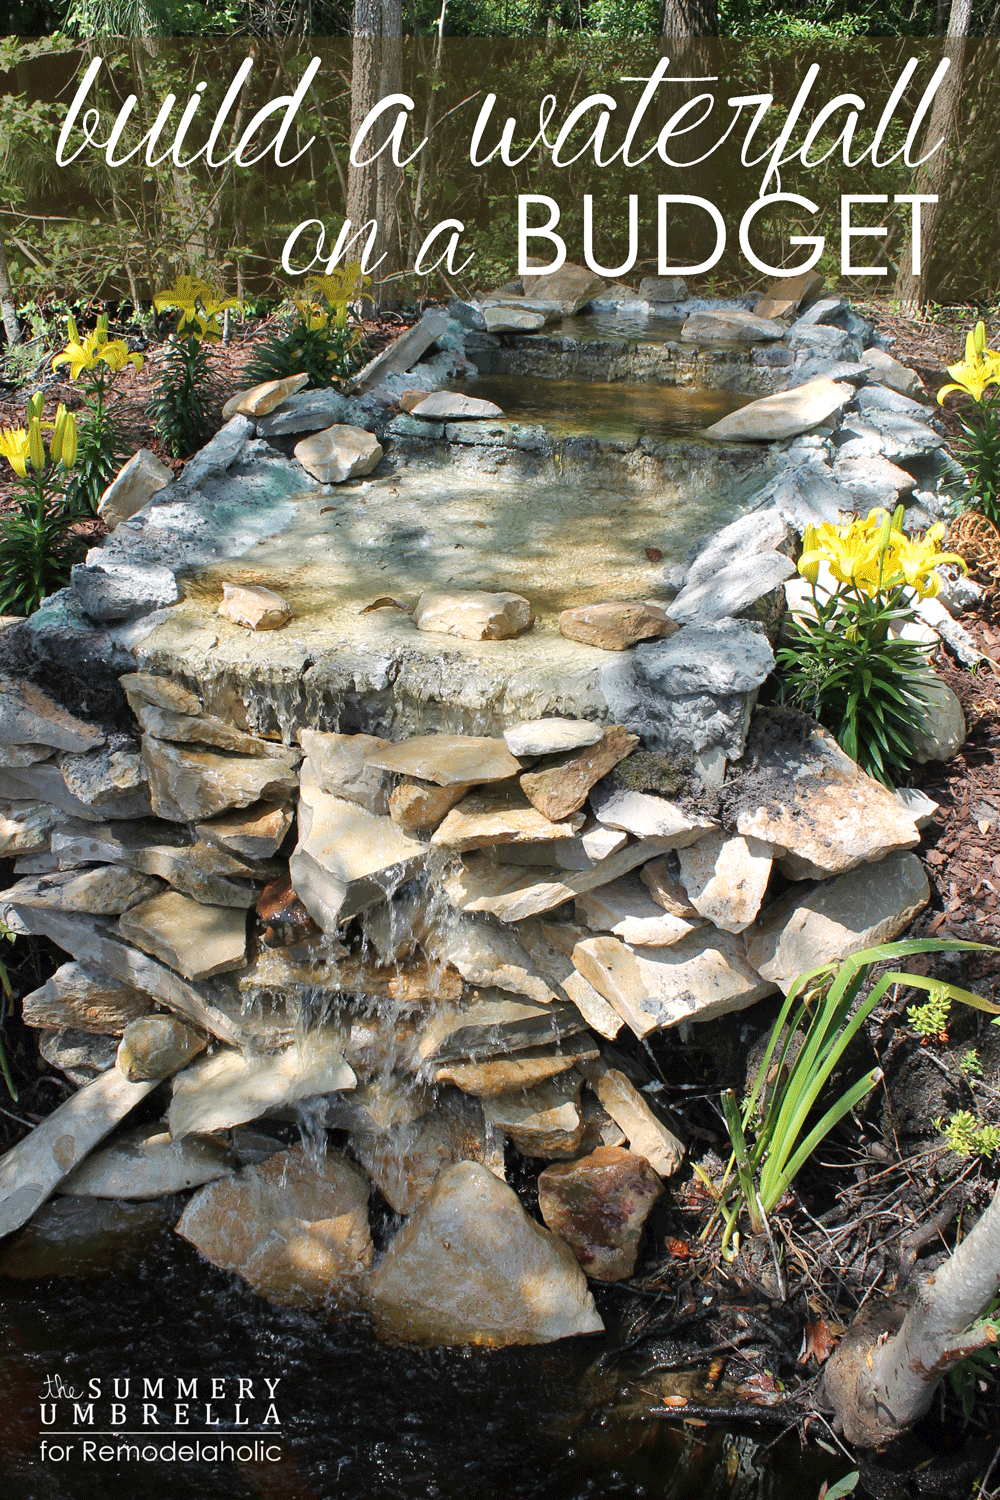 18 Best Diy Backyard Pond Ideas And Designs For 2019 with regard to Backyard Pond Ideas With Waterfall